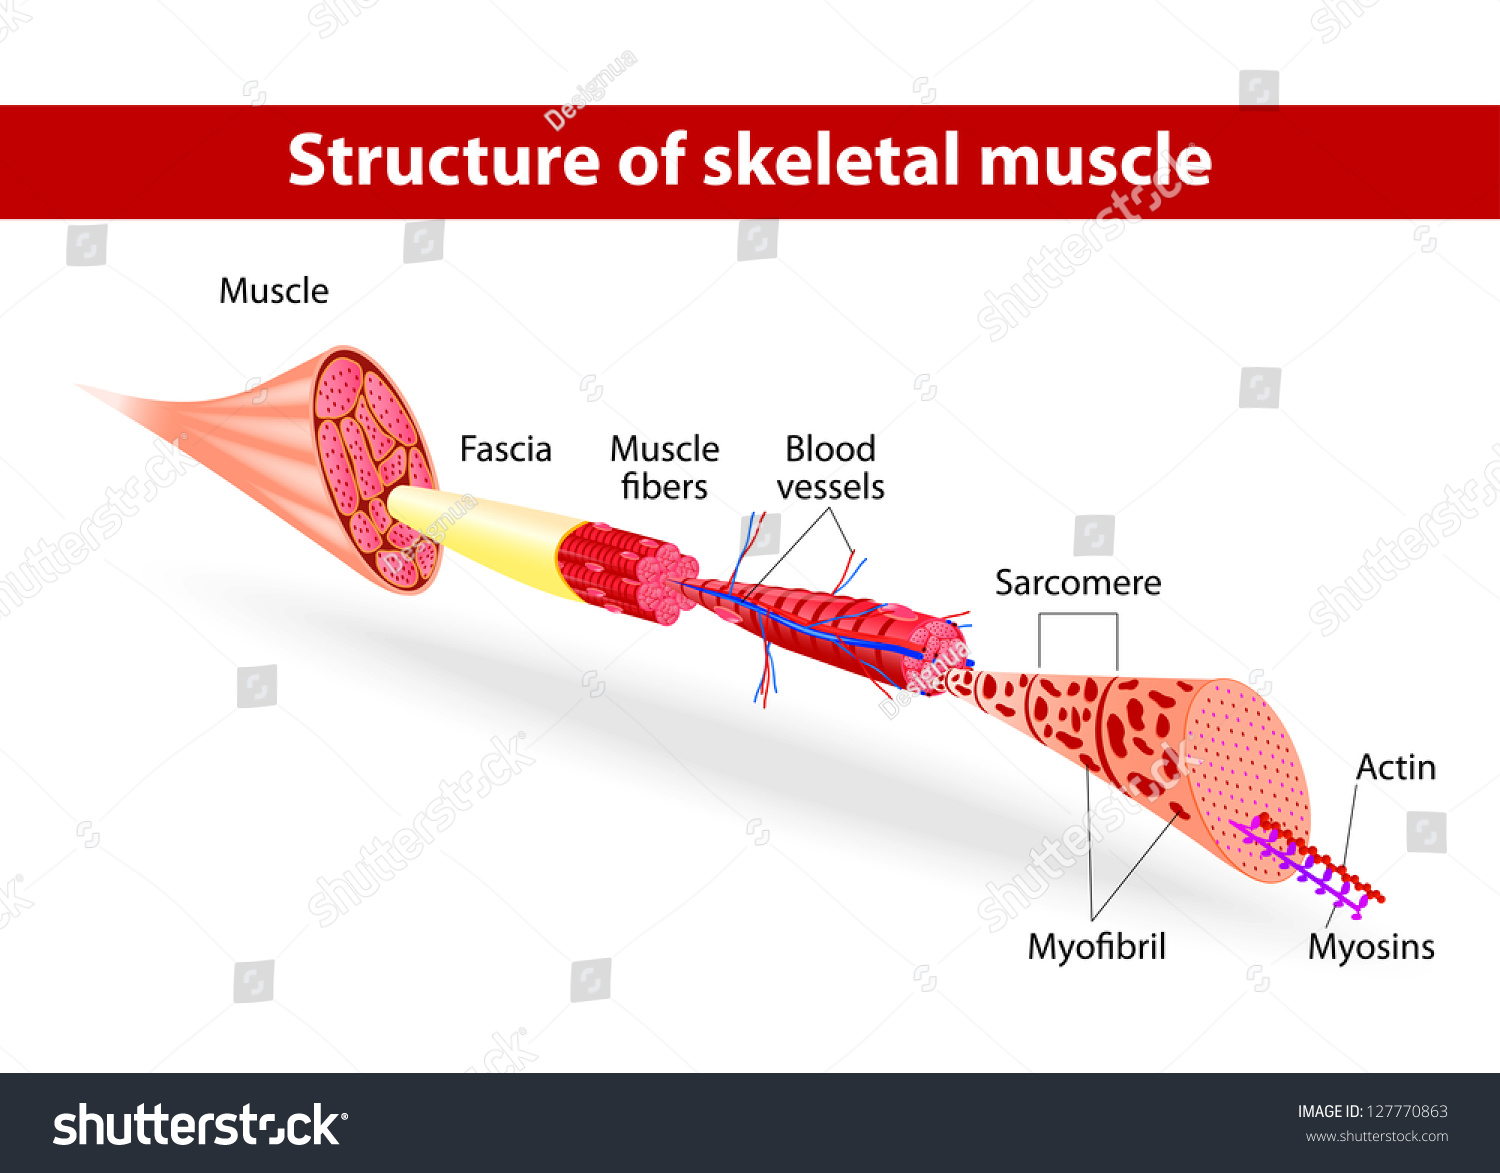 Structure Skeletal Muscle Vector Illustration Stock Vector Royalty